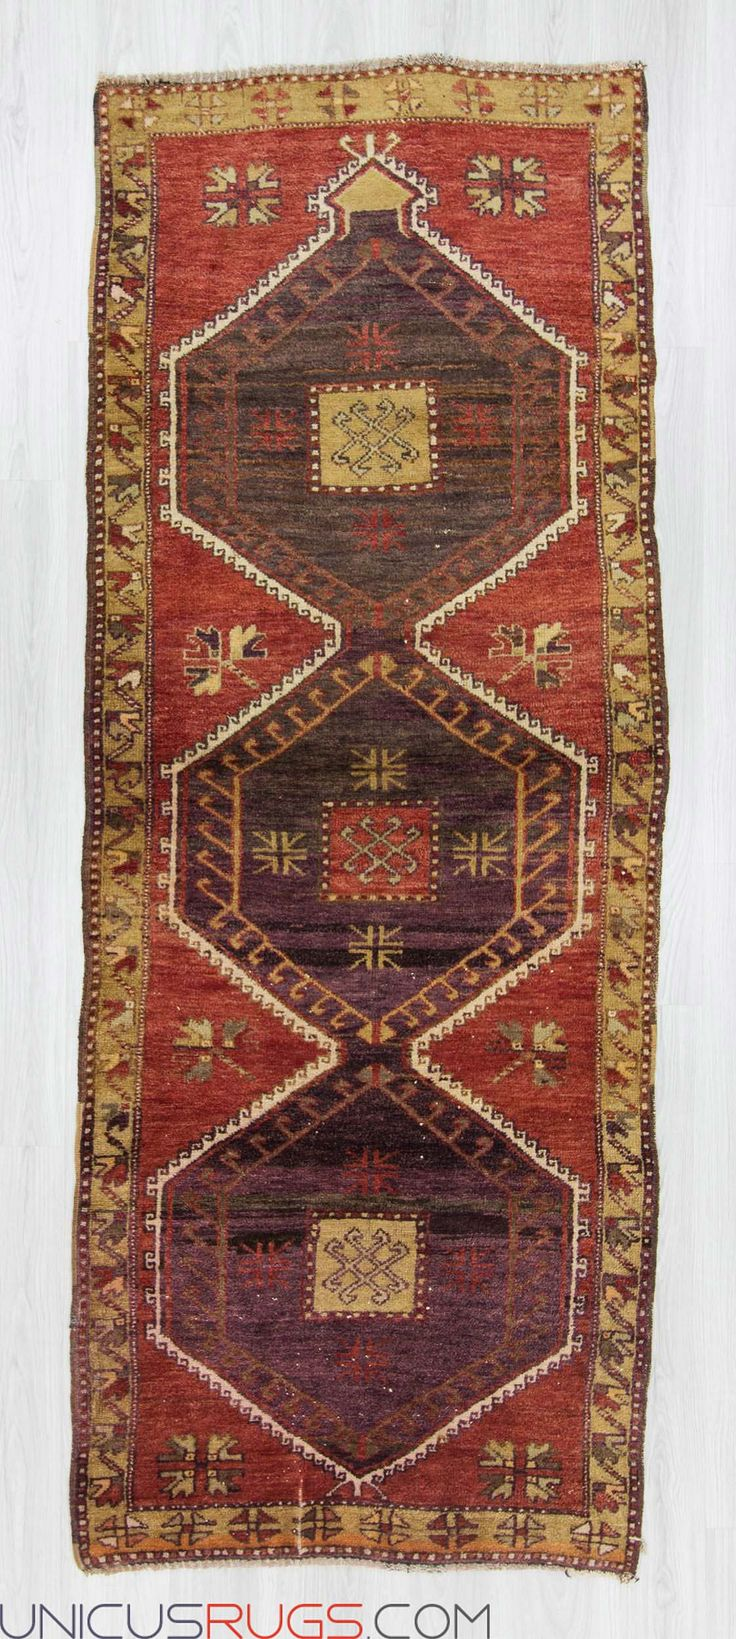 "Vintage runner rug from Malatya region of Turkey. In very good condition. Approximately 50-60 years old. Width: 3' 5"" - Length: 8' 8"" RUNNERS"